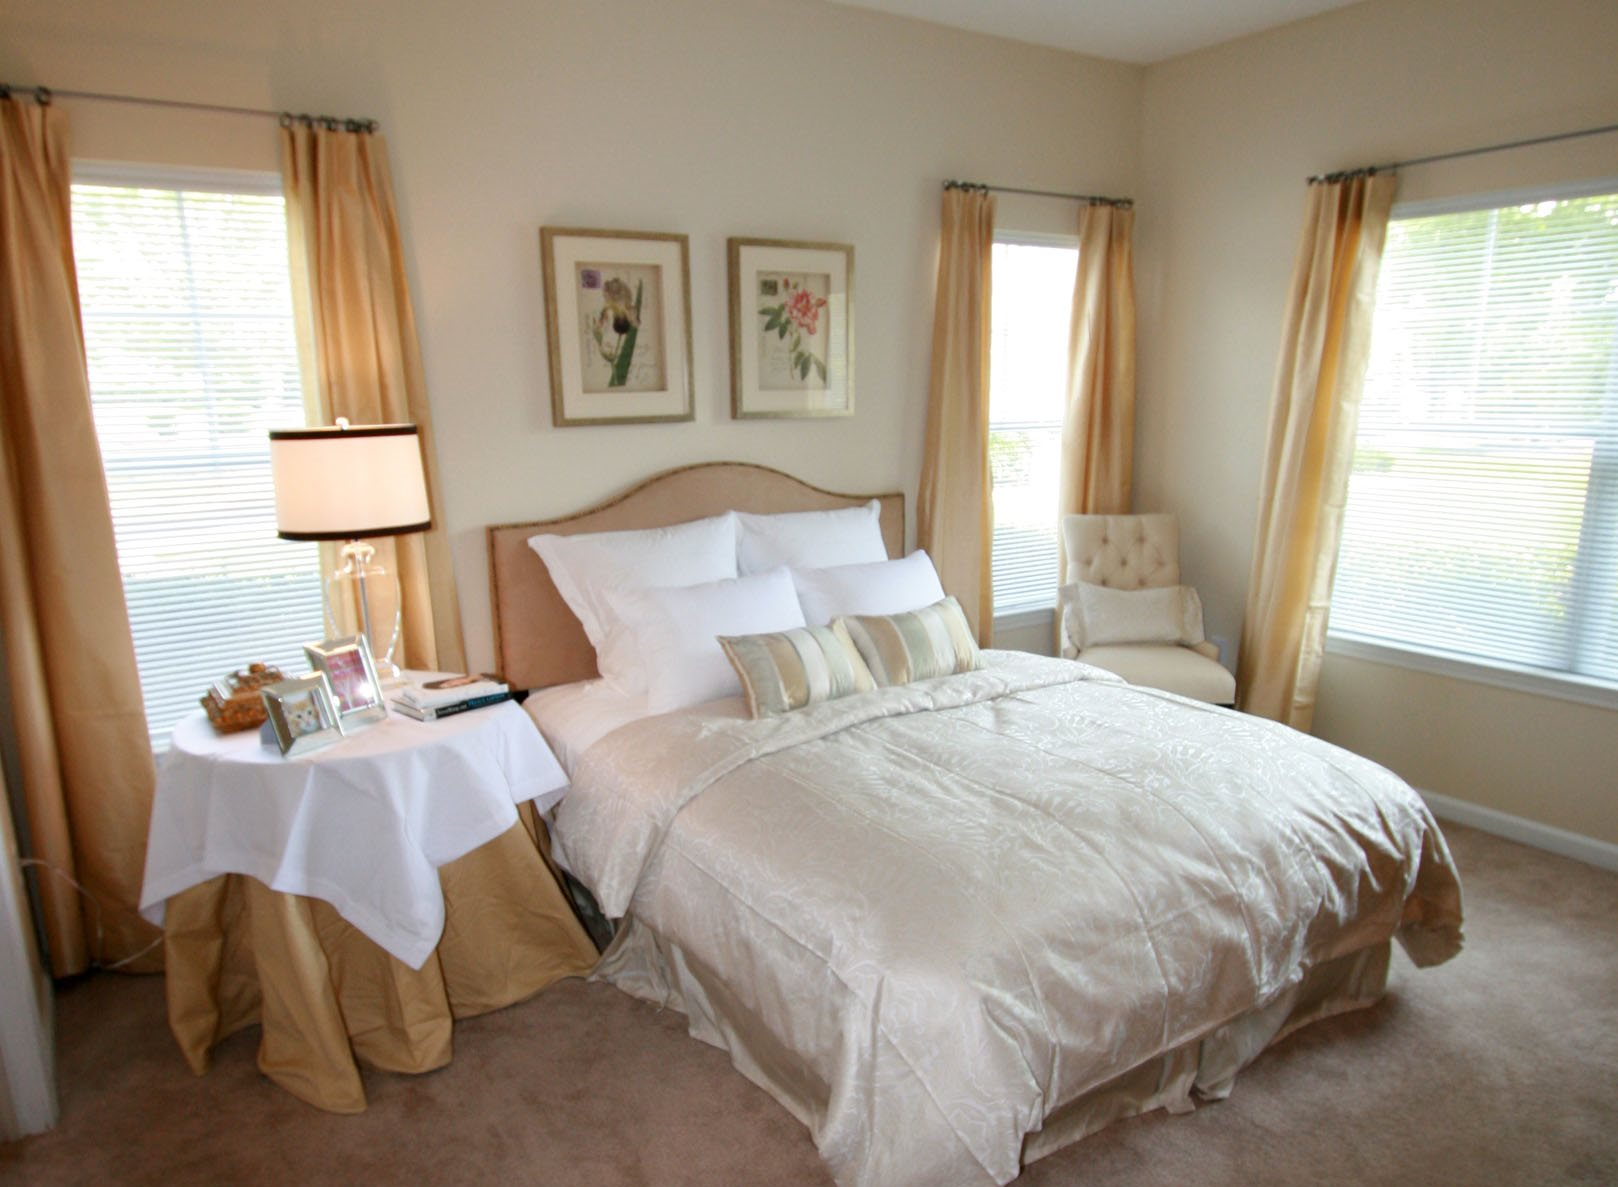 Live in cozy bedrooms at Alta Mill Apartments, 1650 Anderson Mill Road, Austell, GA 30106